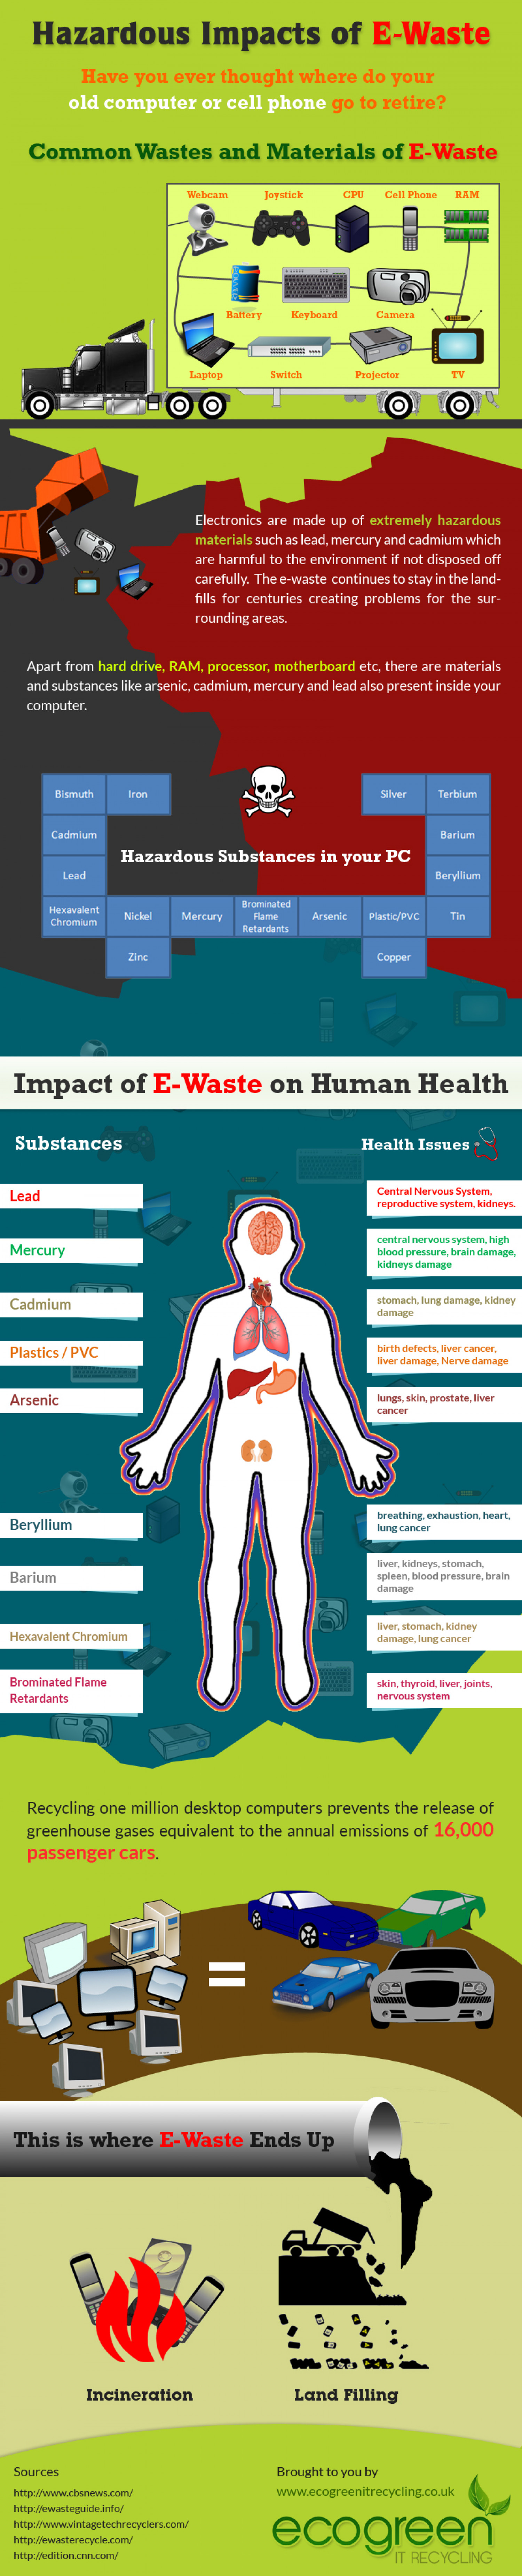 Hazardous Impacts of E-Waste Infographic